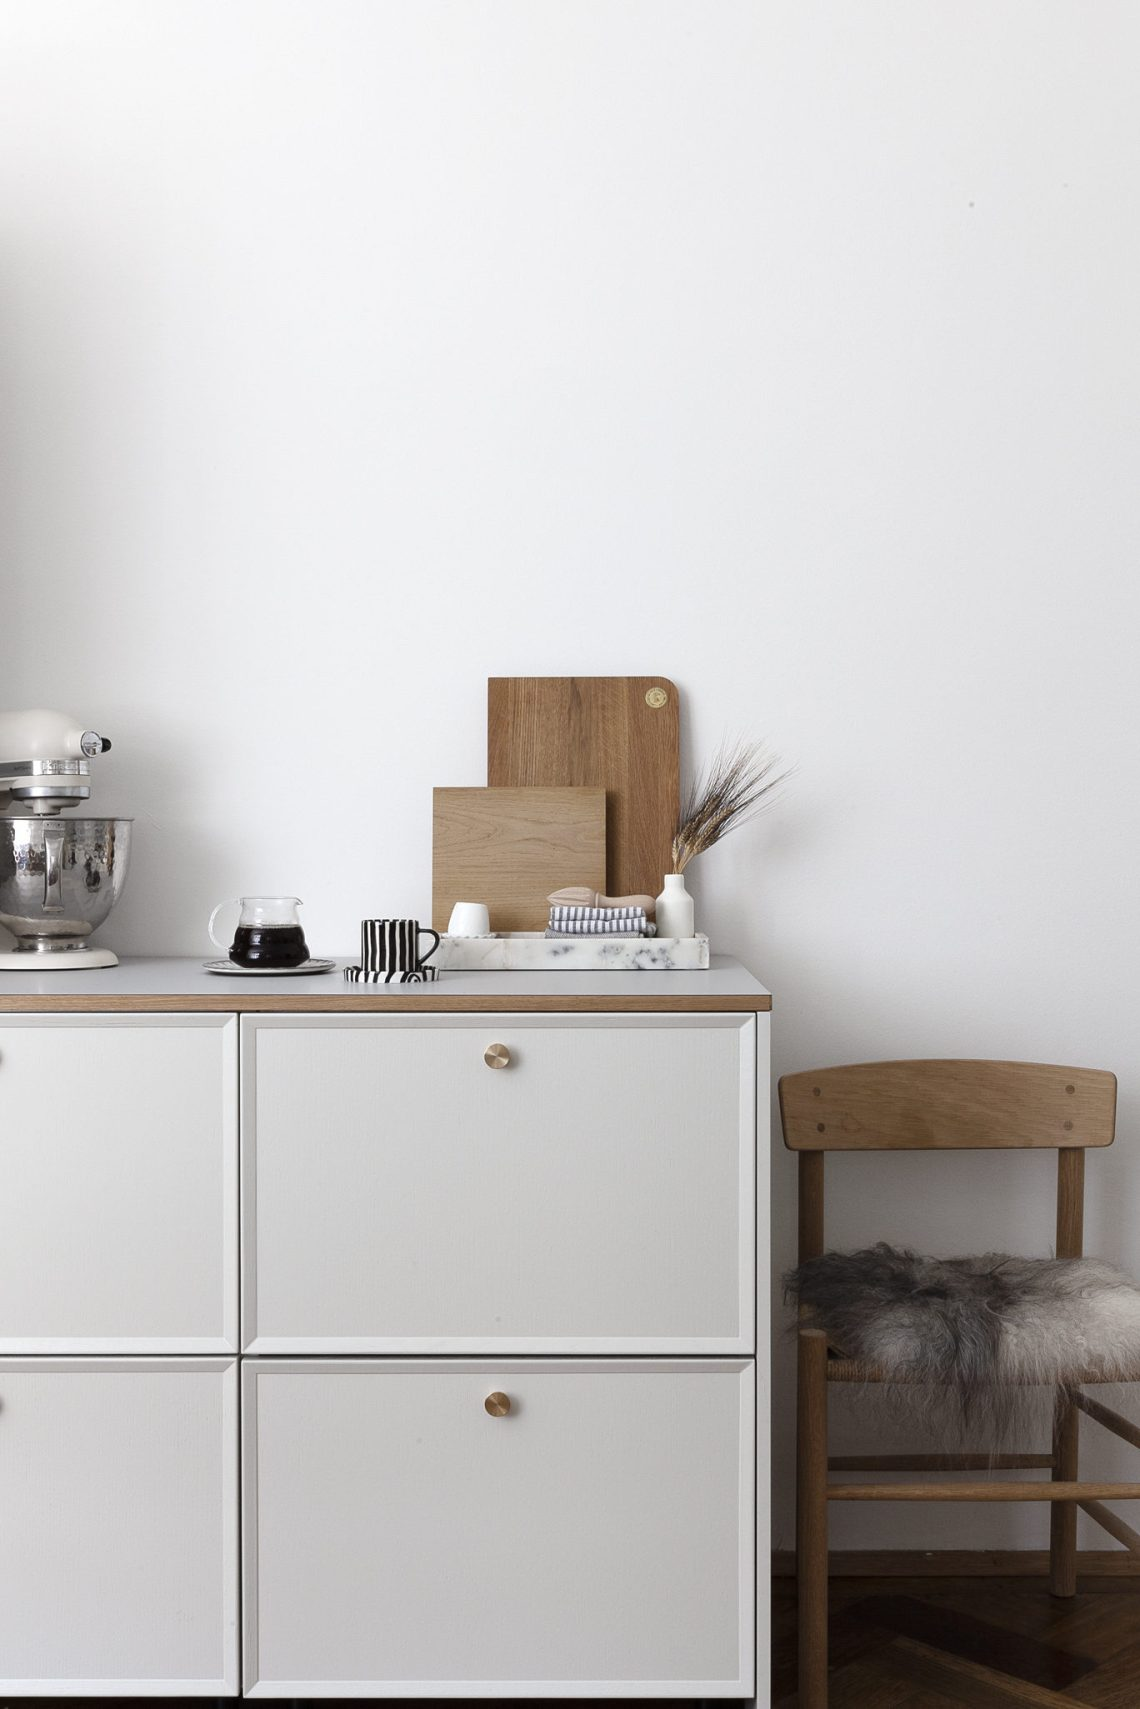 Updating my Ikea kitchen with Reform